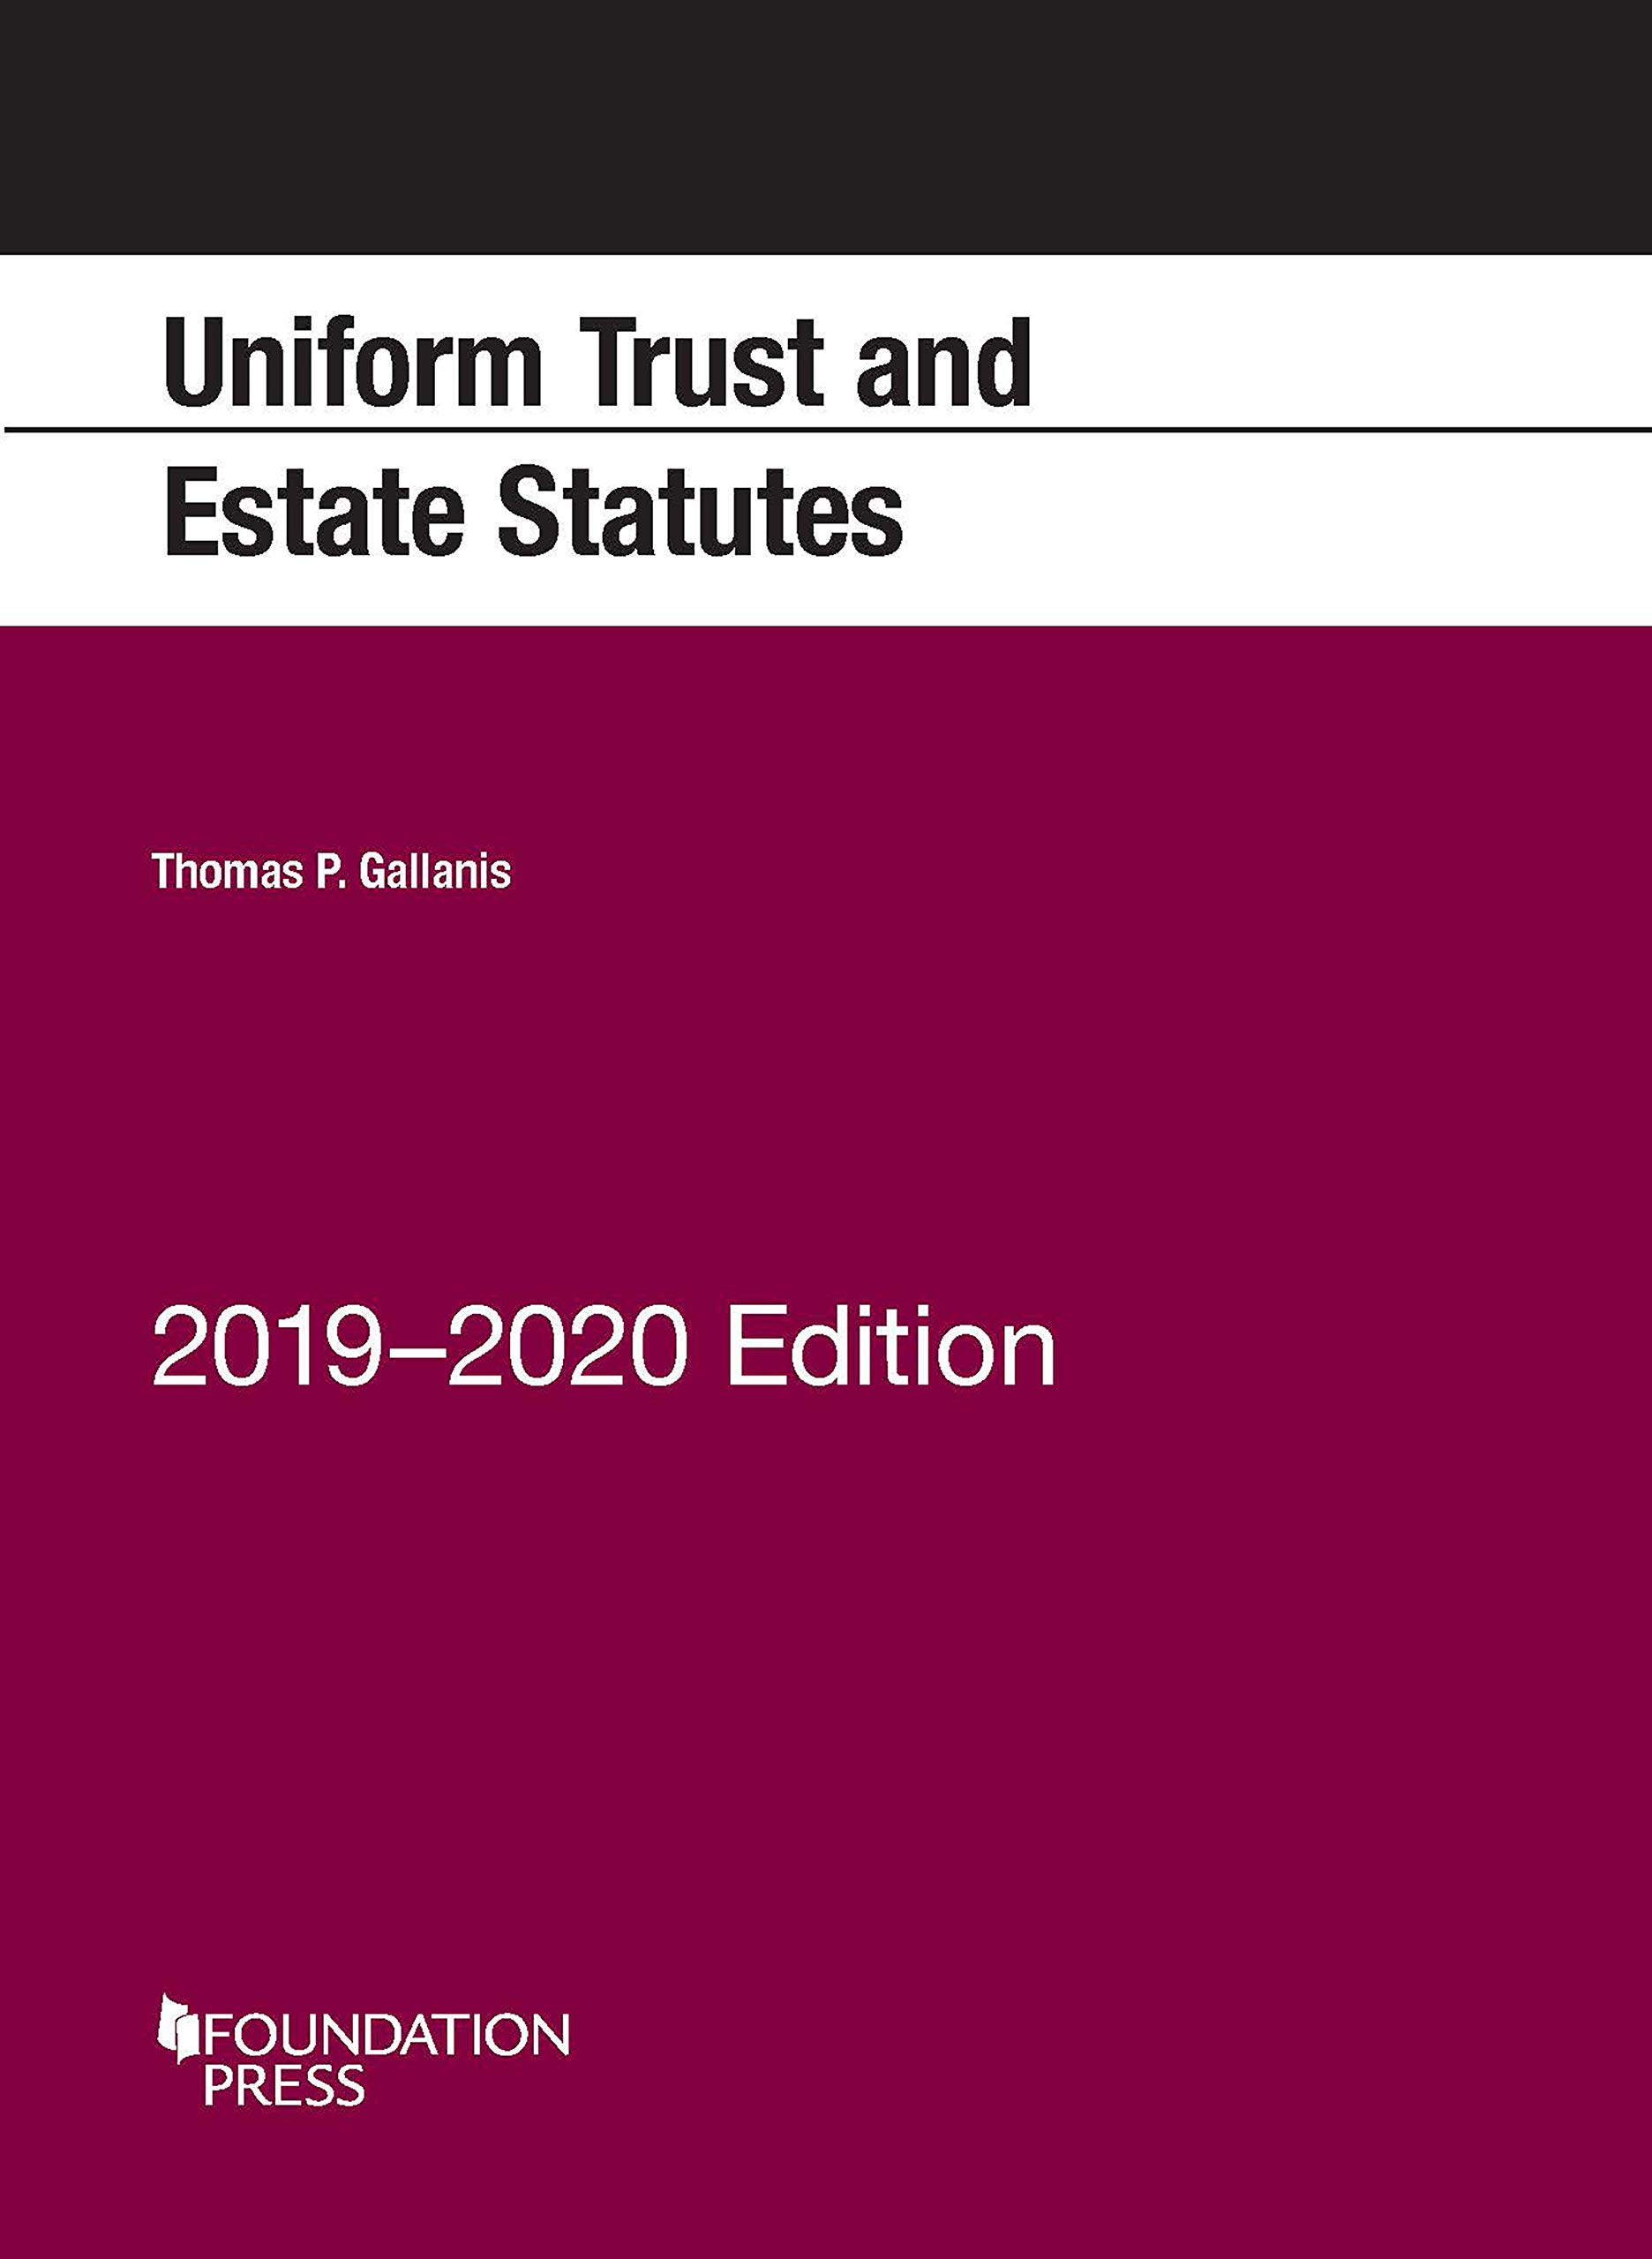 Uniform Trust and Estate Statutes, 2019-2020 Edition (Selected Statutes) by Foundation Press